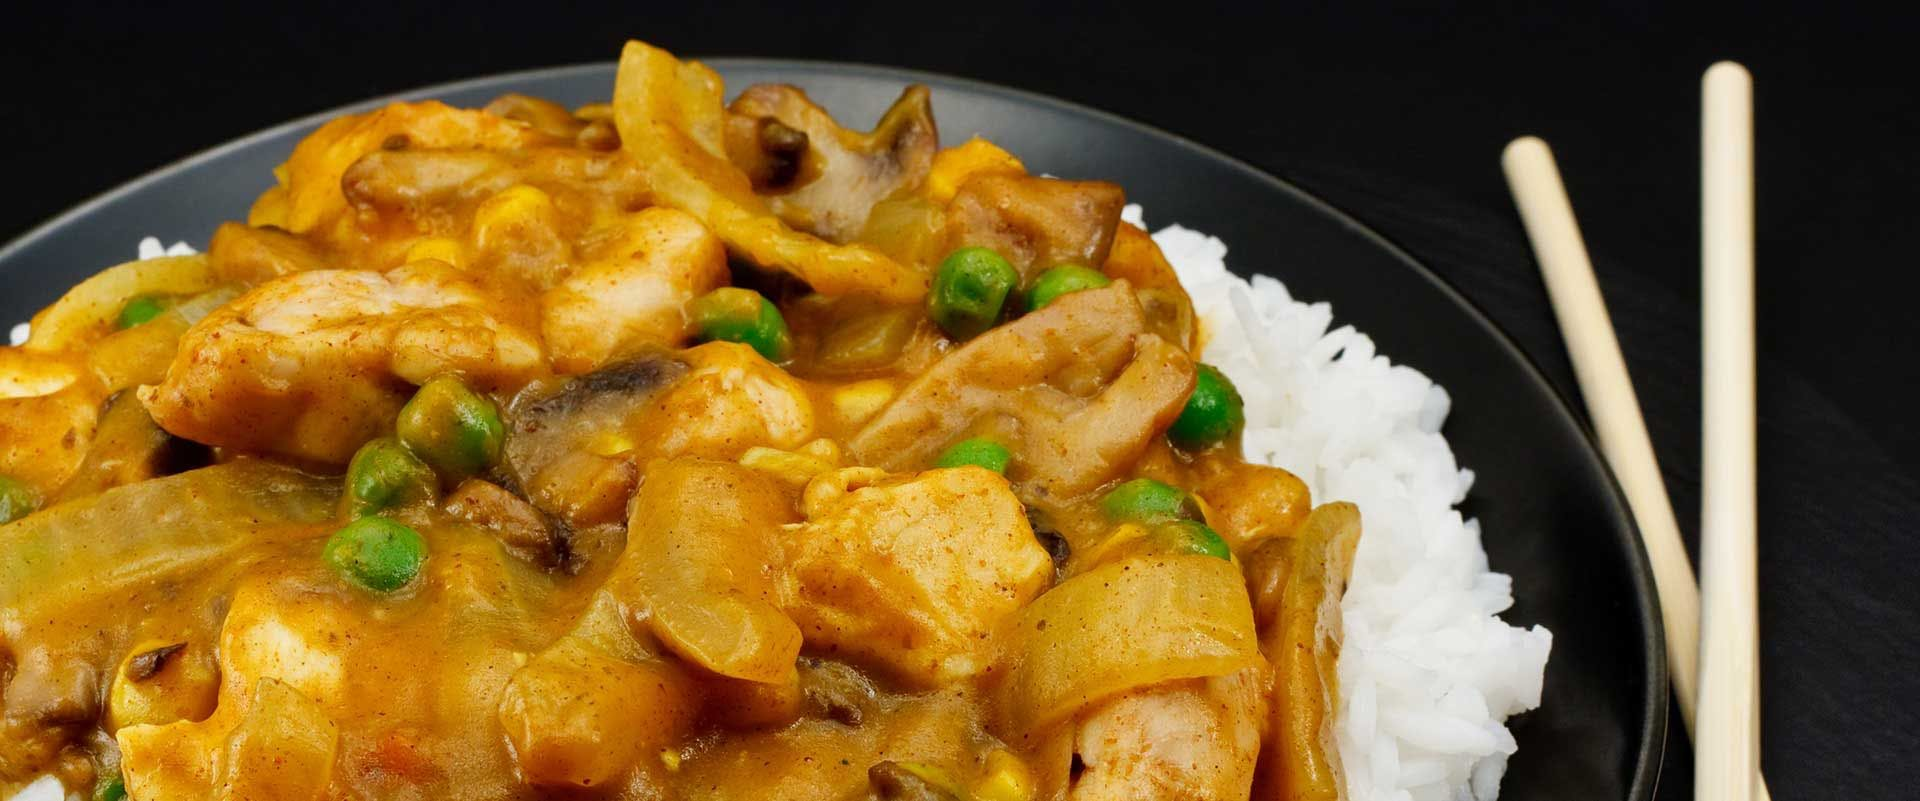 Order delicious Chinese food from Panda Village in Barnet